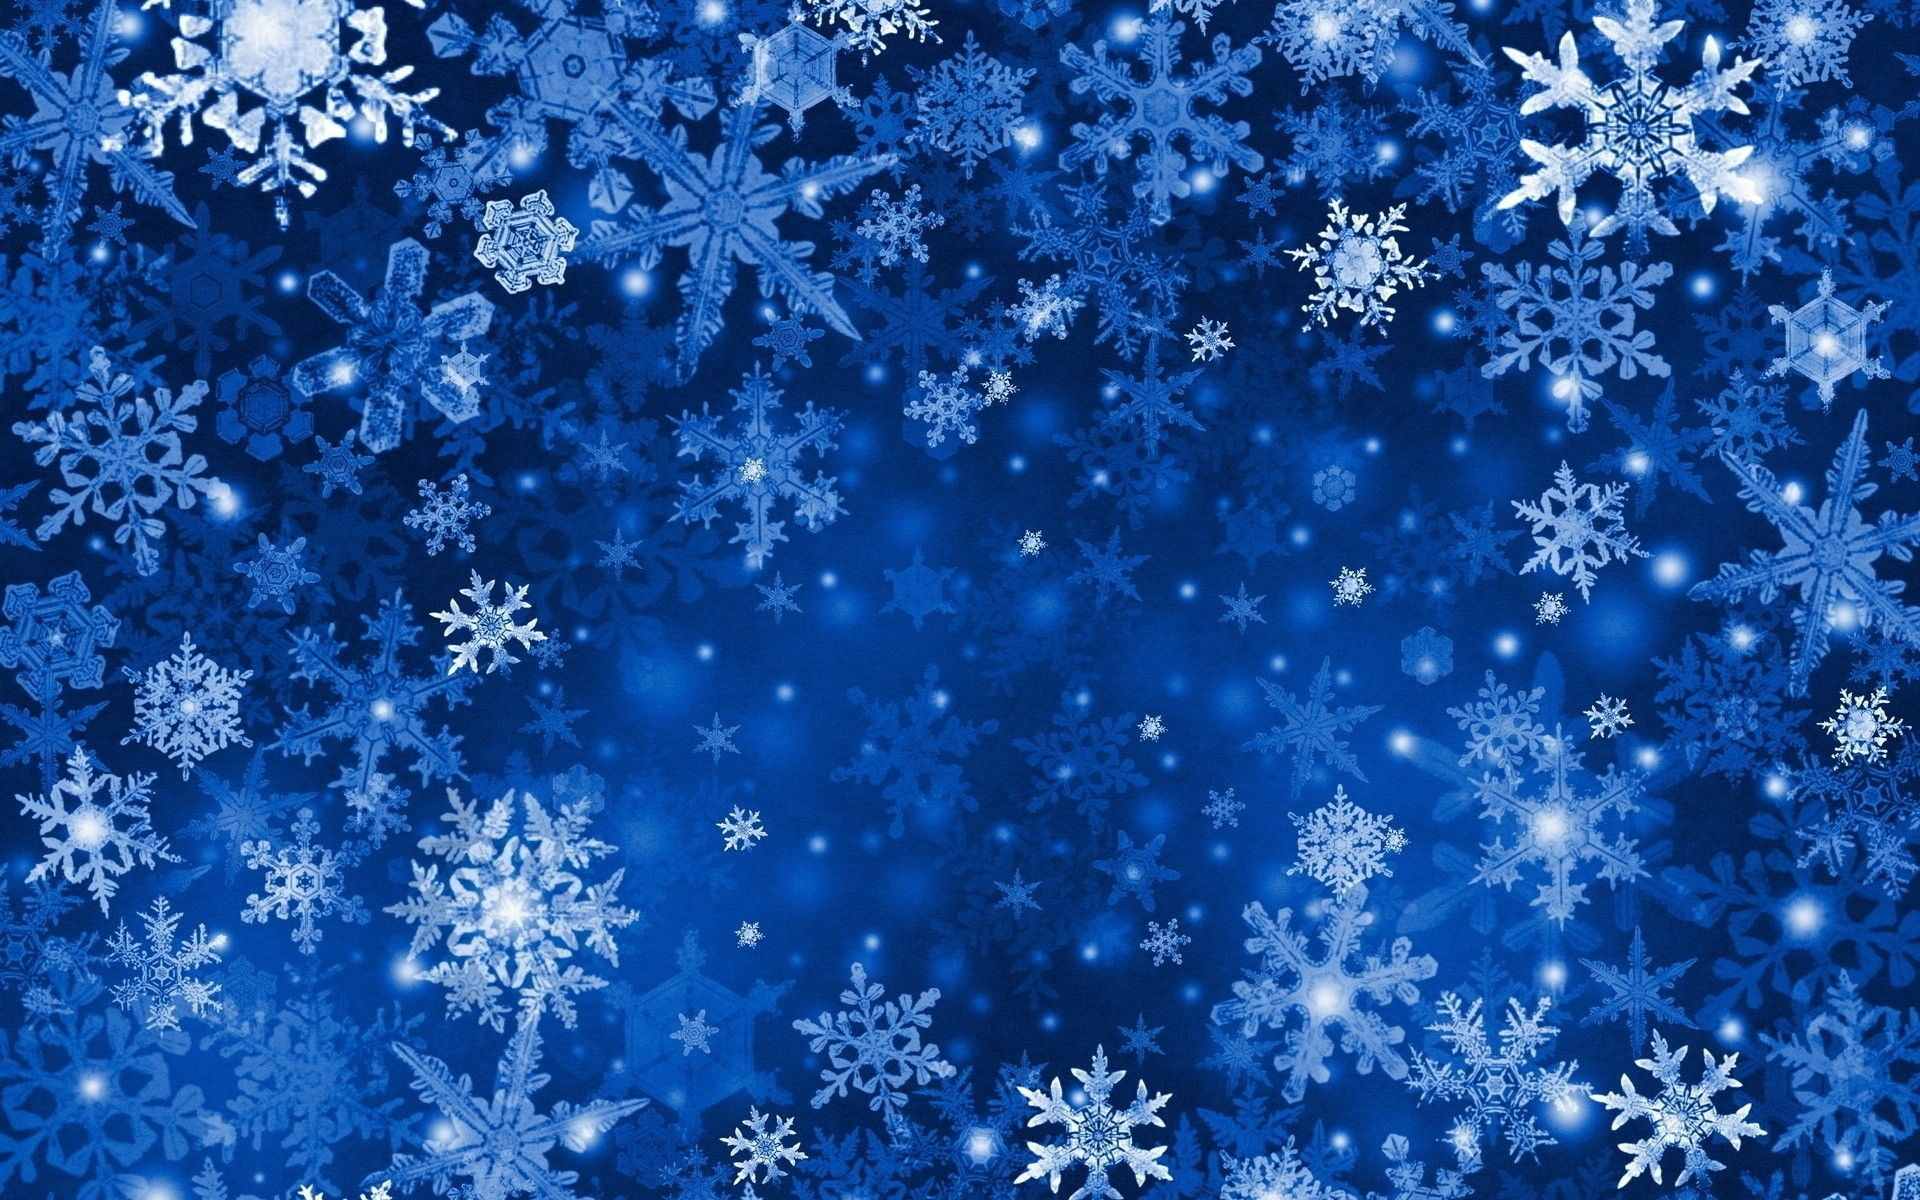 Beautiful Texture Background Full Of Snowflakes Snowflake Wallpaper Snowflake Background Winter Background